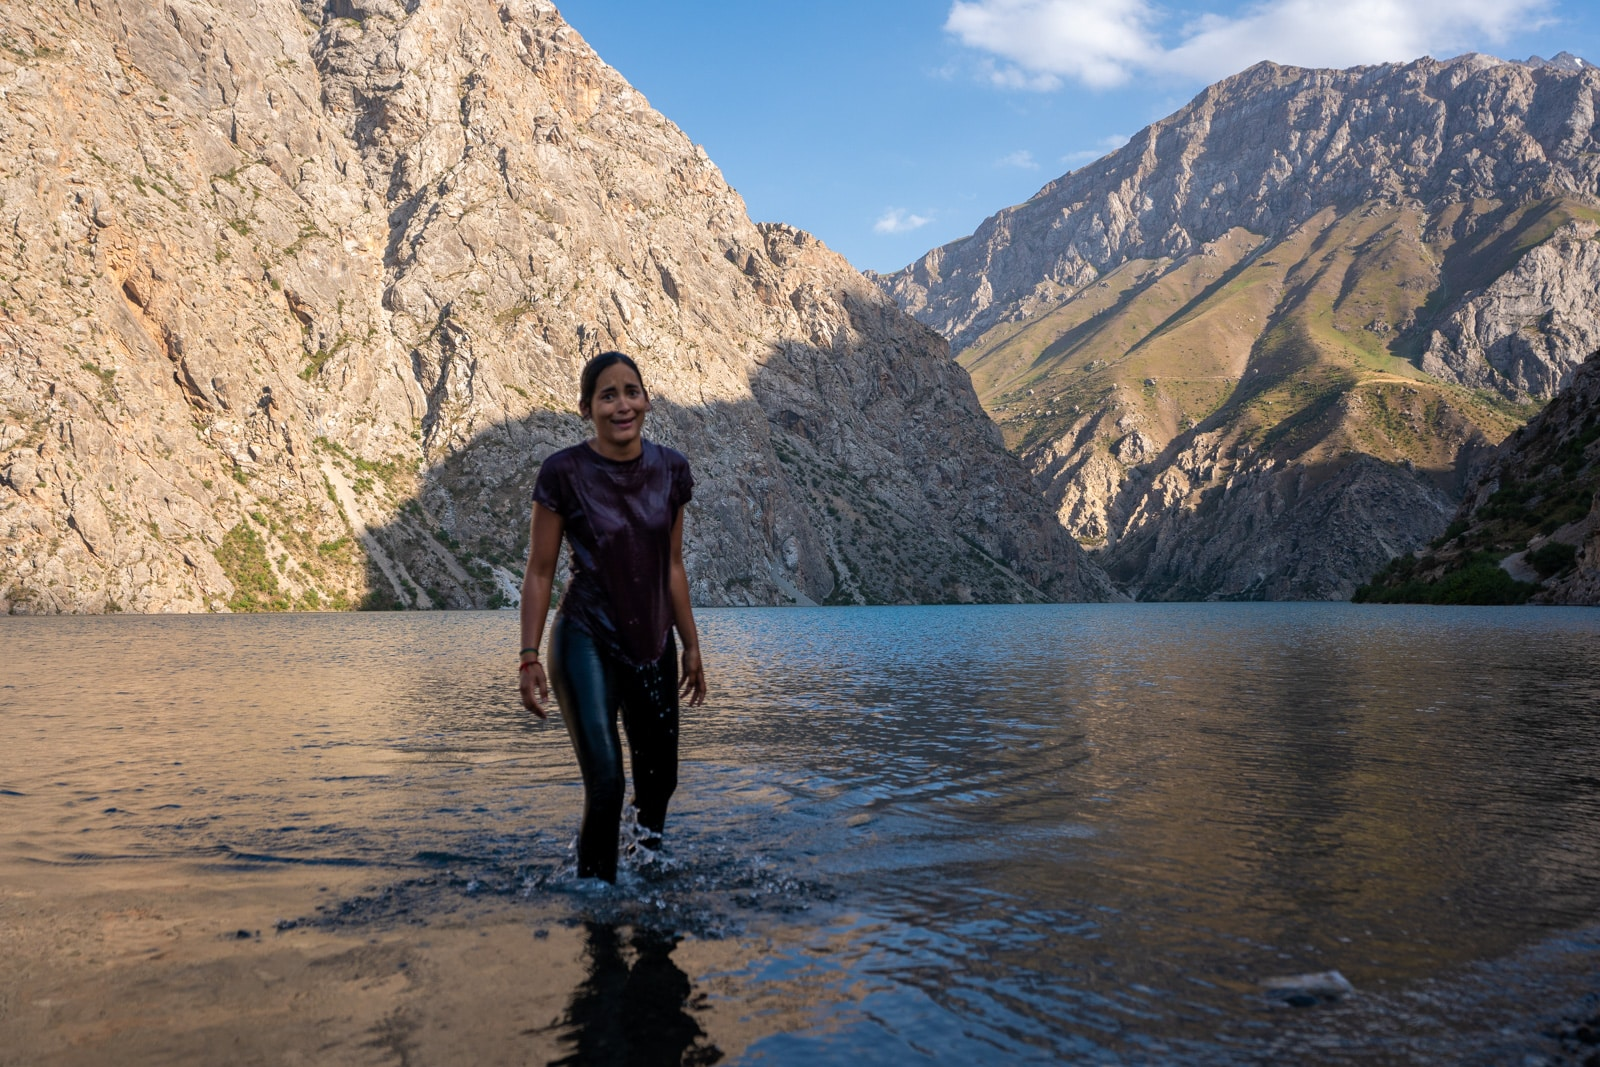 Swimming in the seventh lake at Haft Kol, Tajikistan